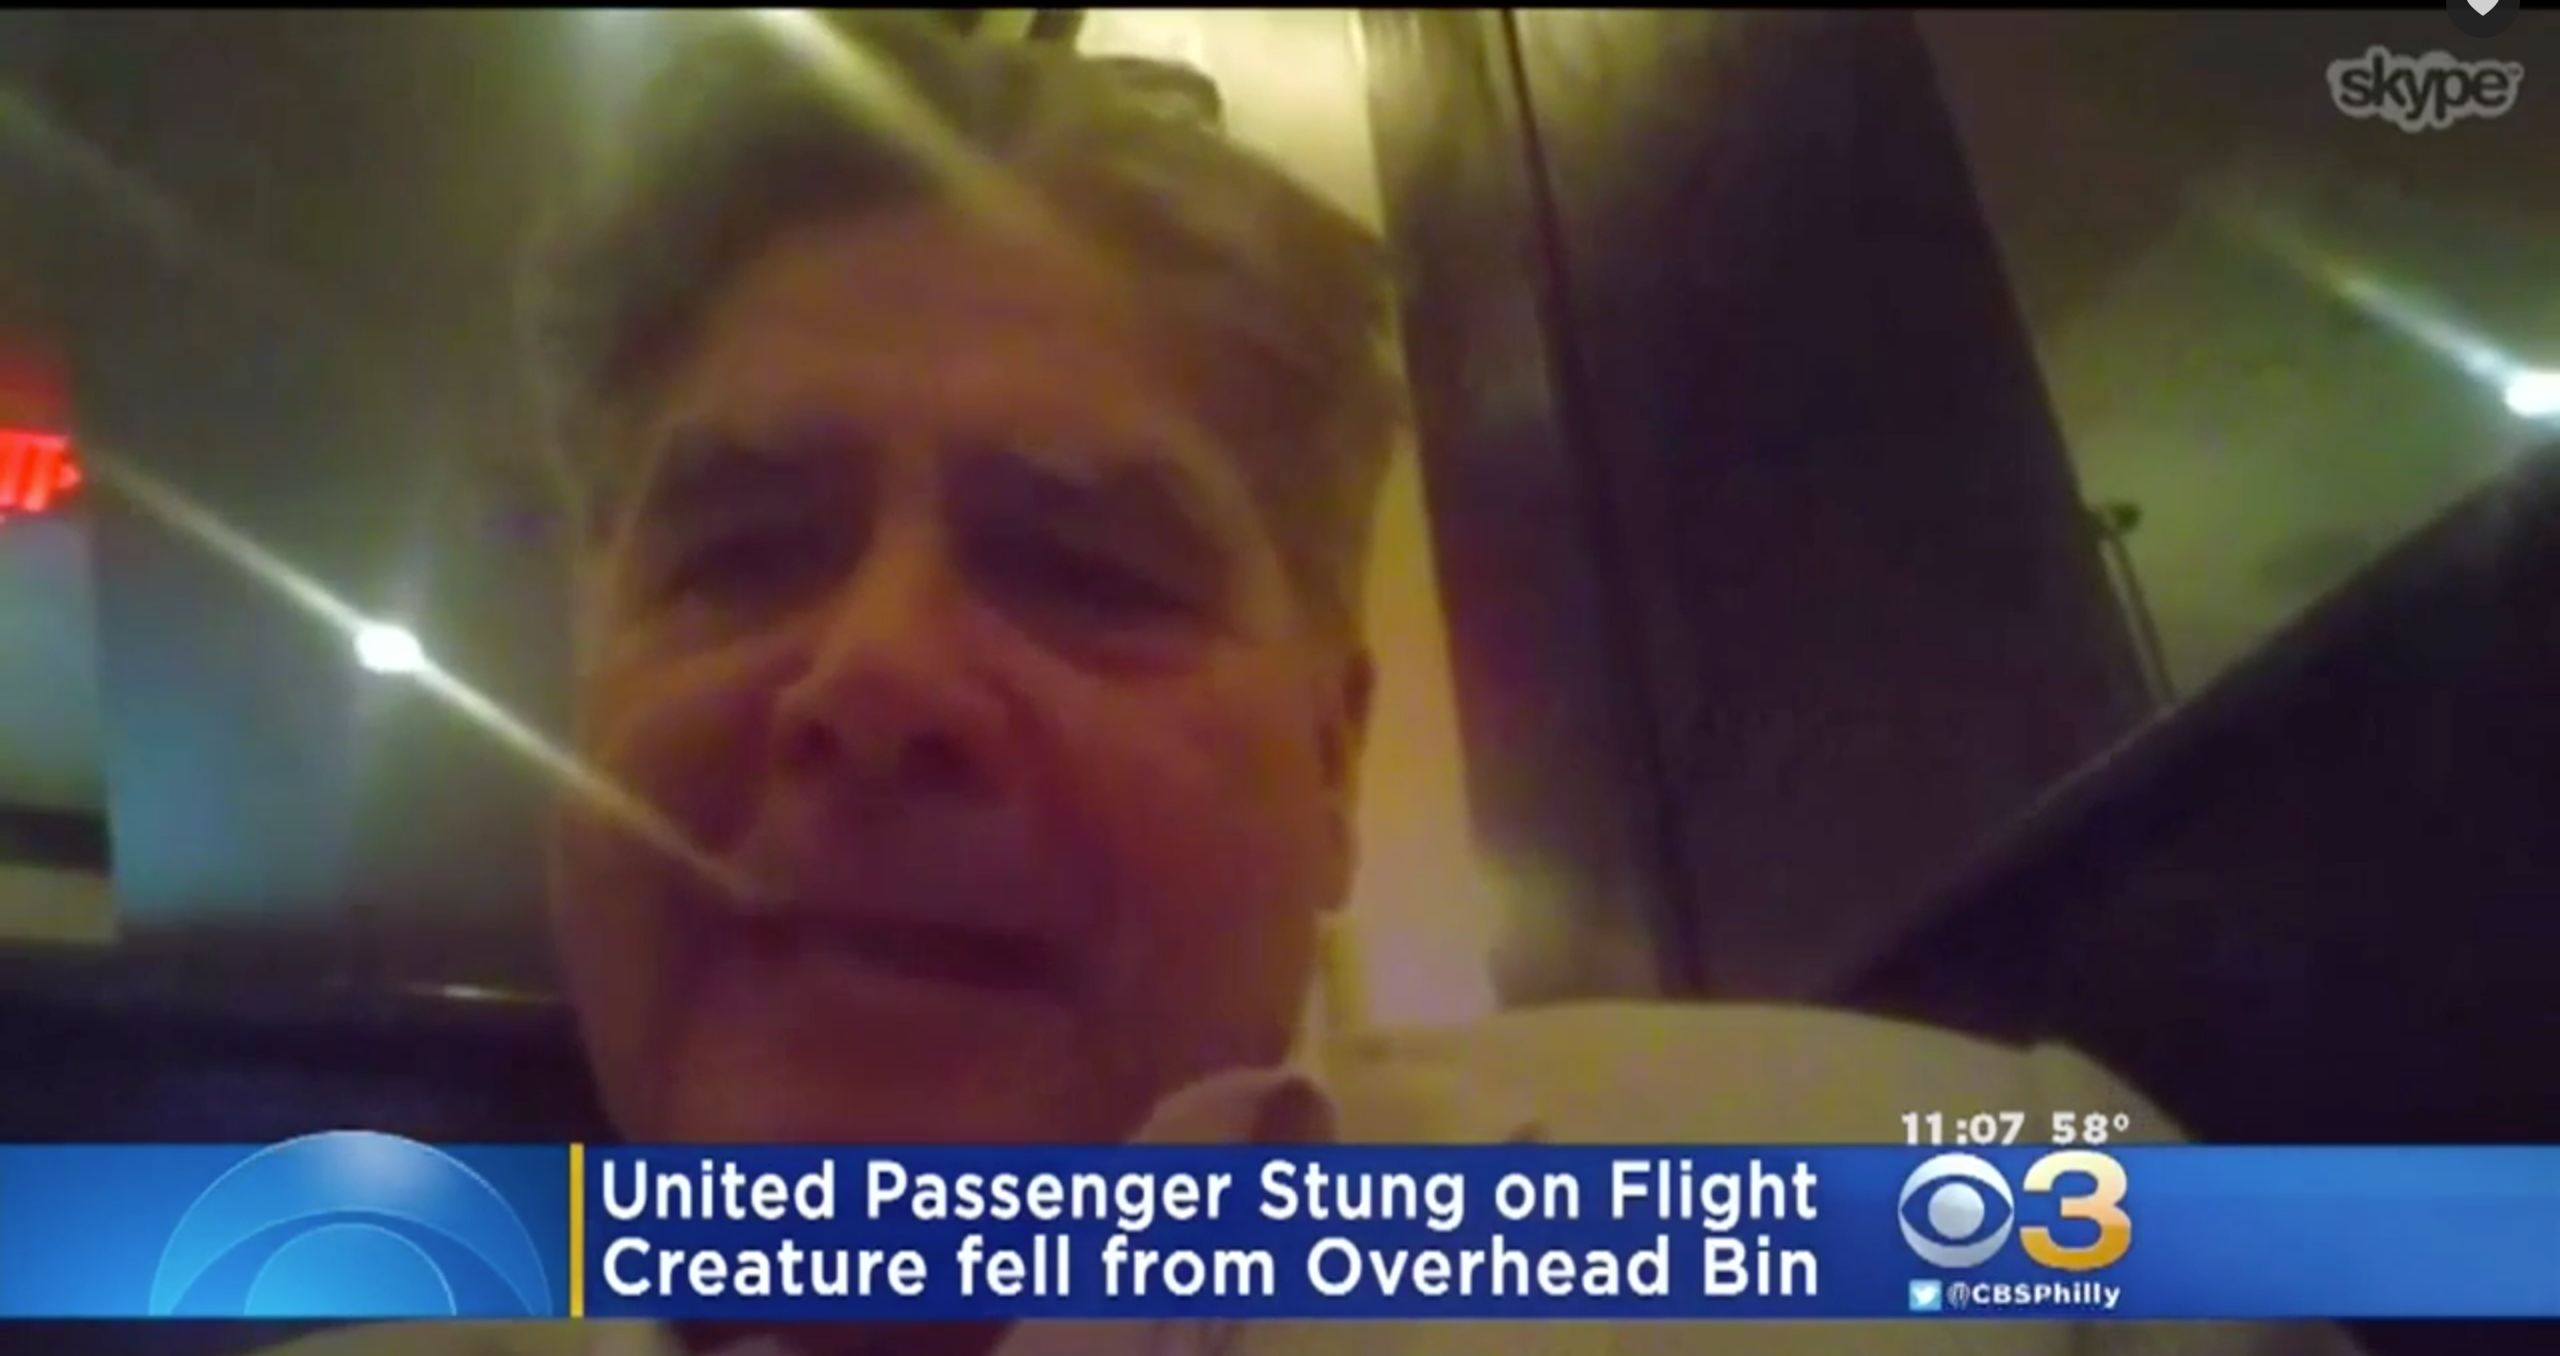 United Airlines Disastrous Week Peaks With Rogue Scorpion Attack On